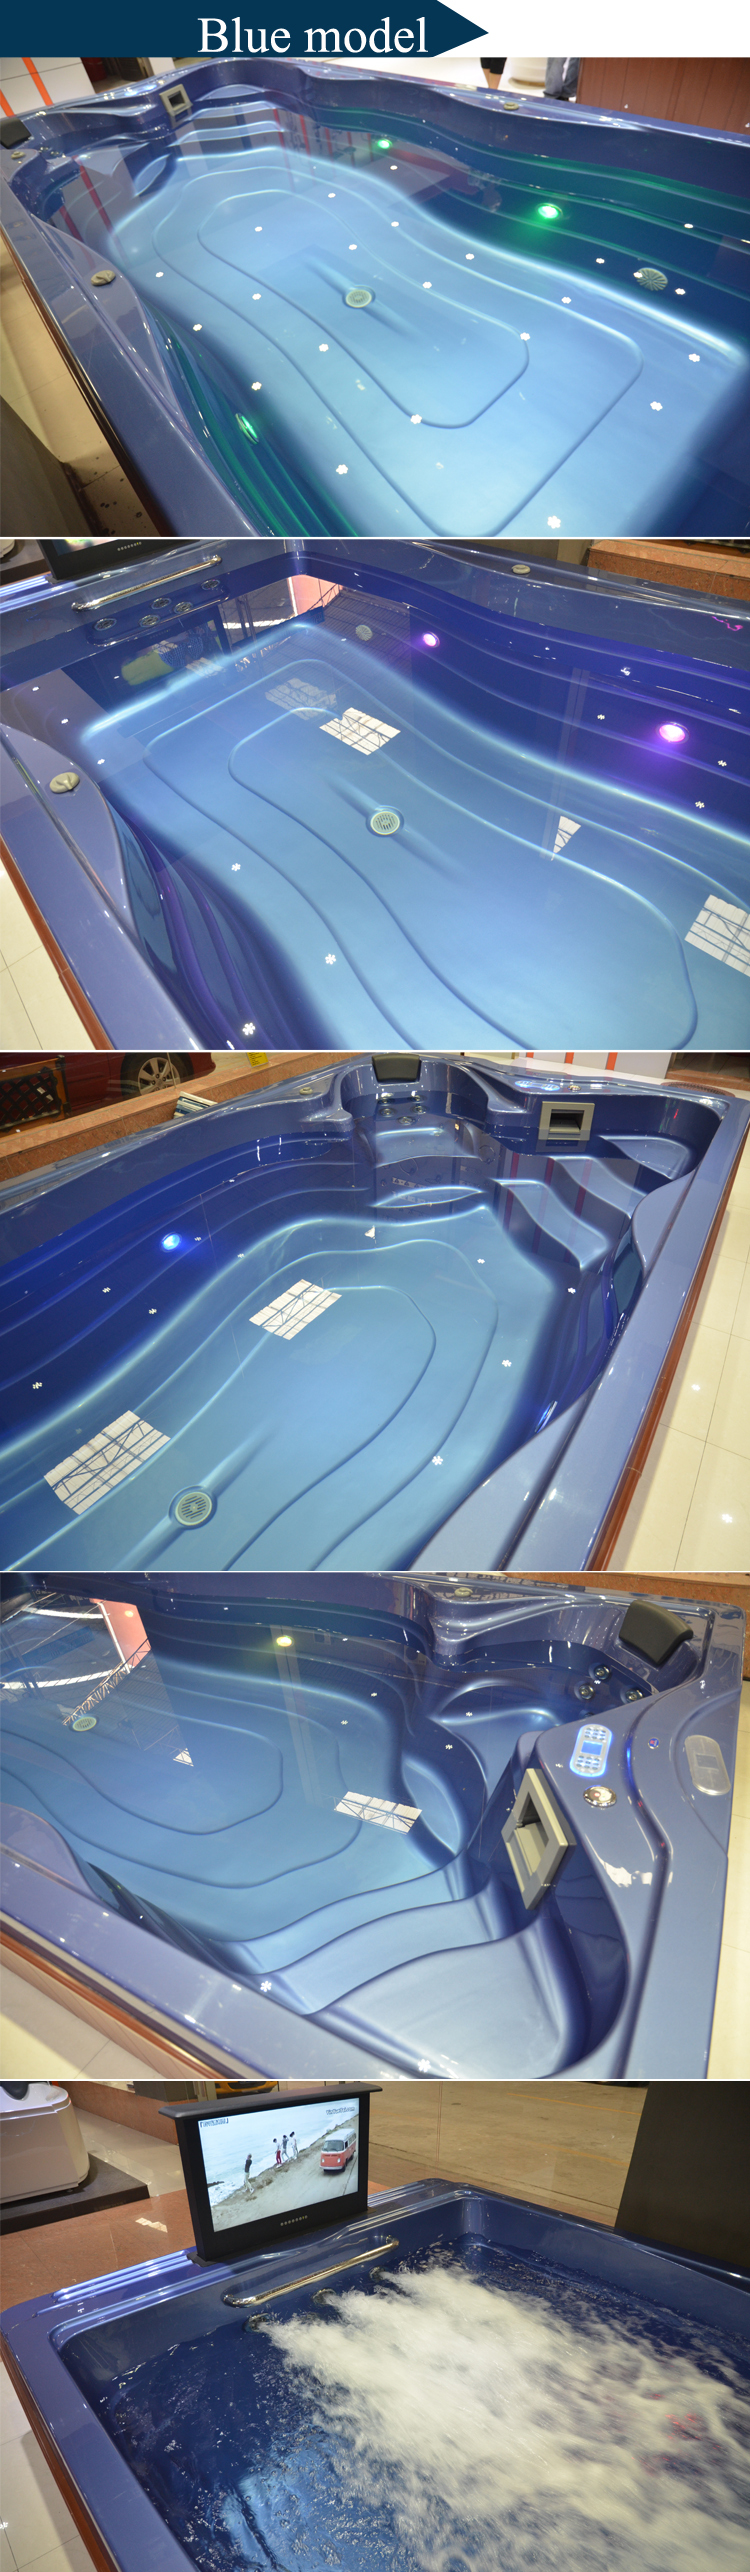 Hs k609 good sale garden acrylic fiberglass pools prices for Fiber glass price